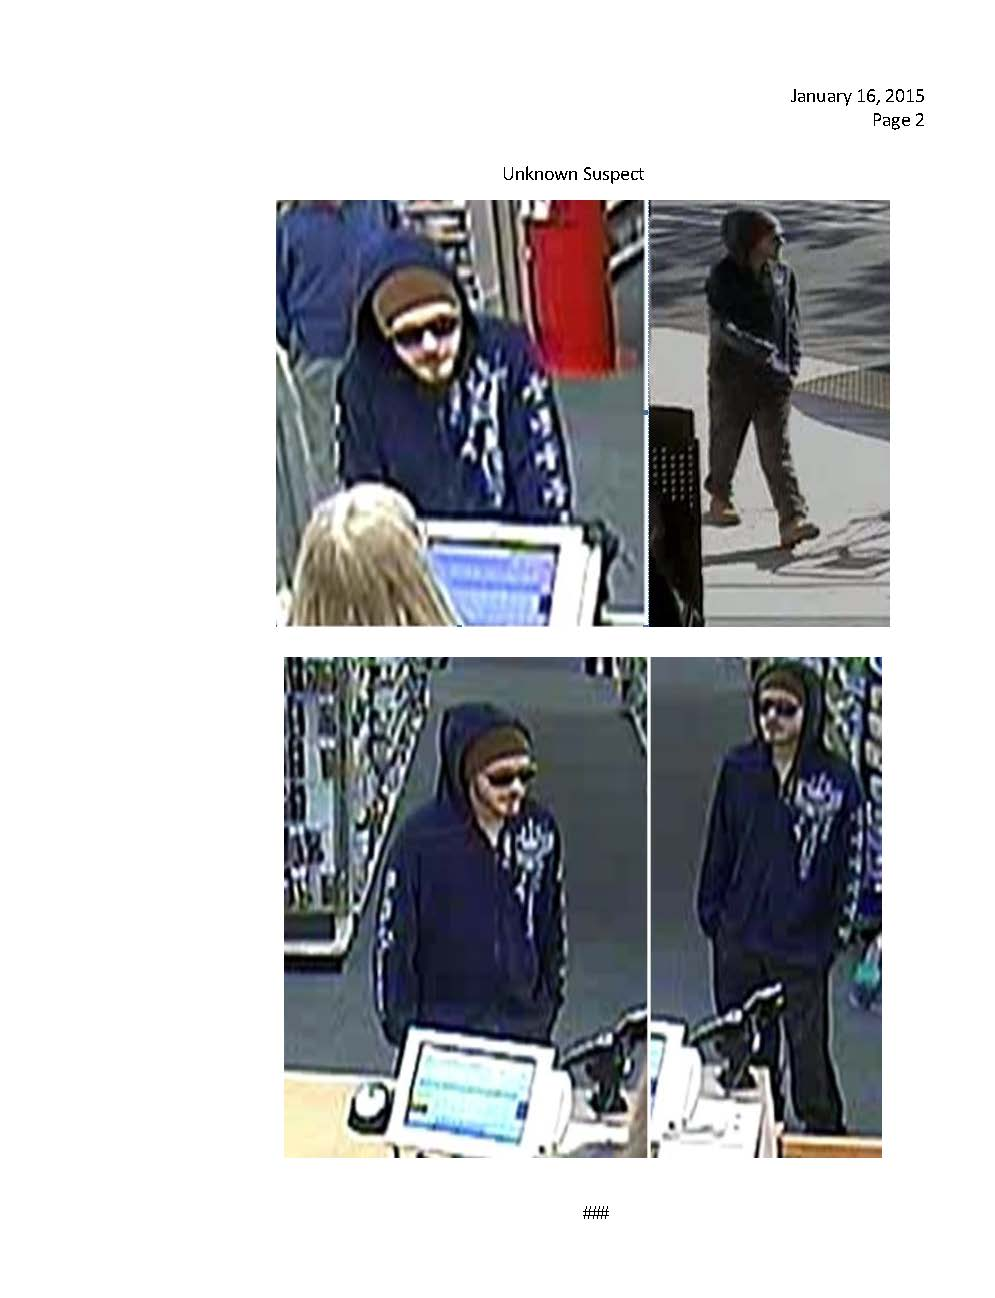 011615 CVS Pharmacy Robbery_Page_2